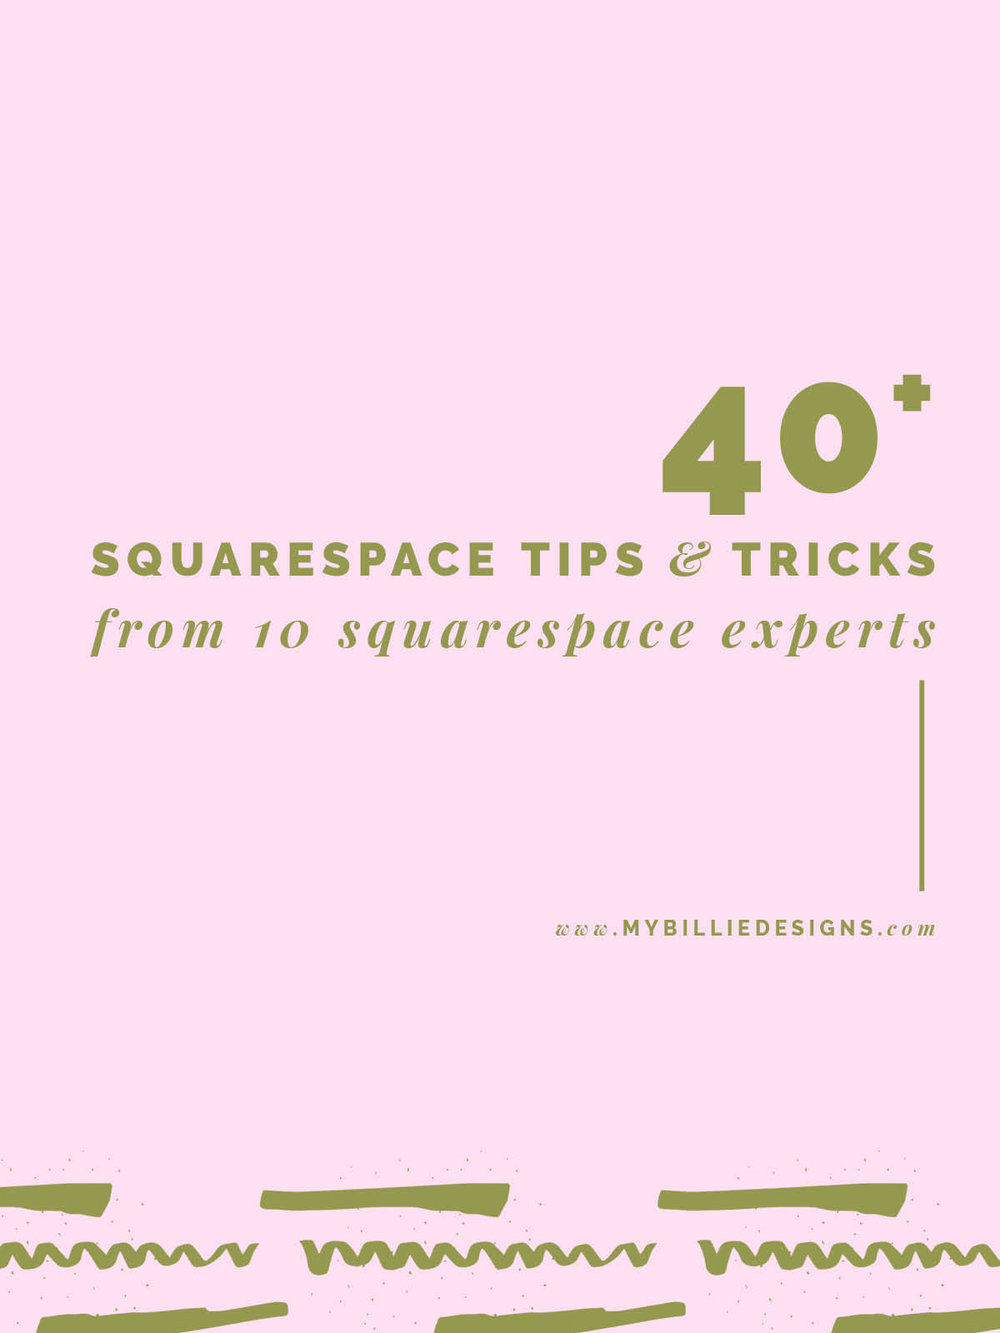 40+ Squarespace Tips & Tricks From 10 Squarespace Experts --> Click through for full post!